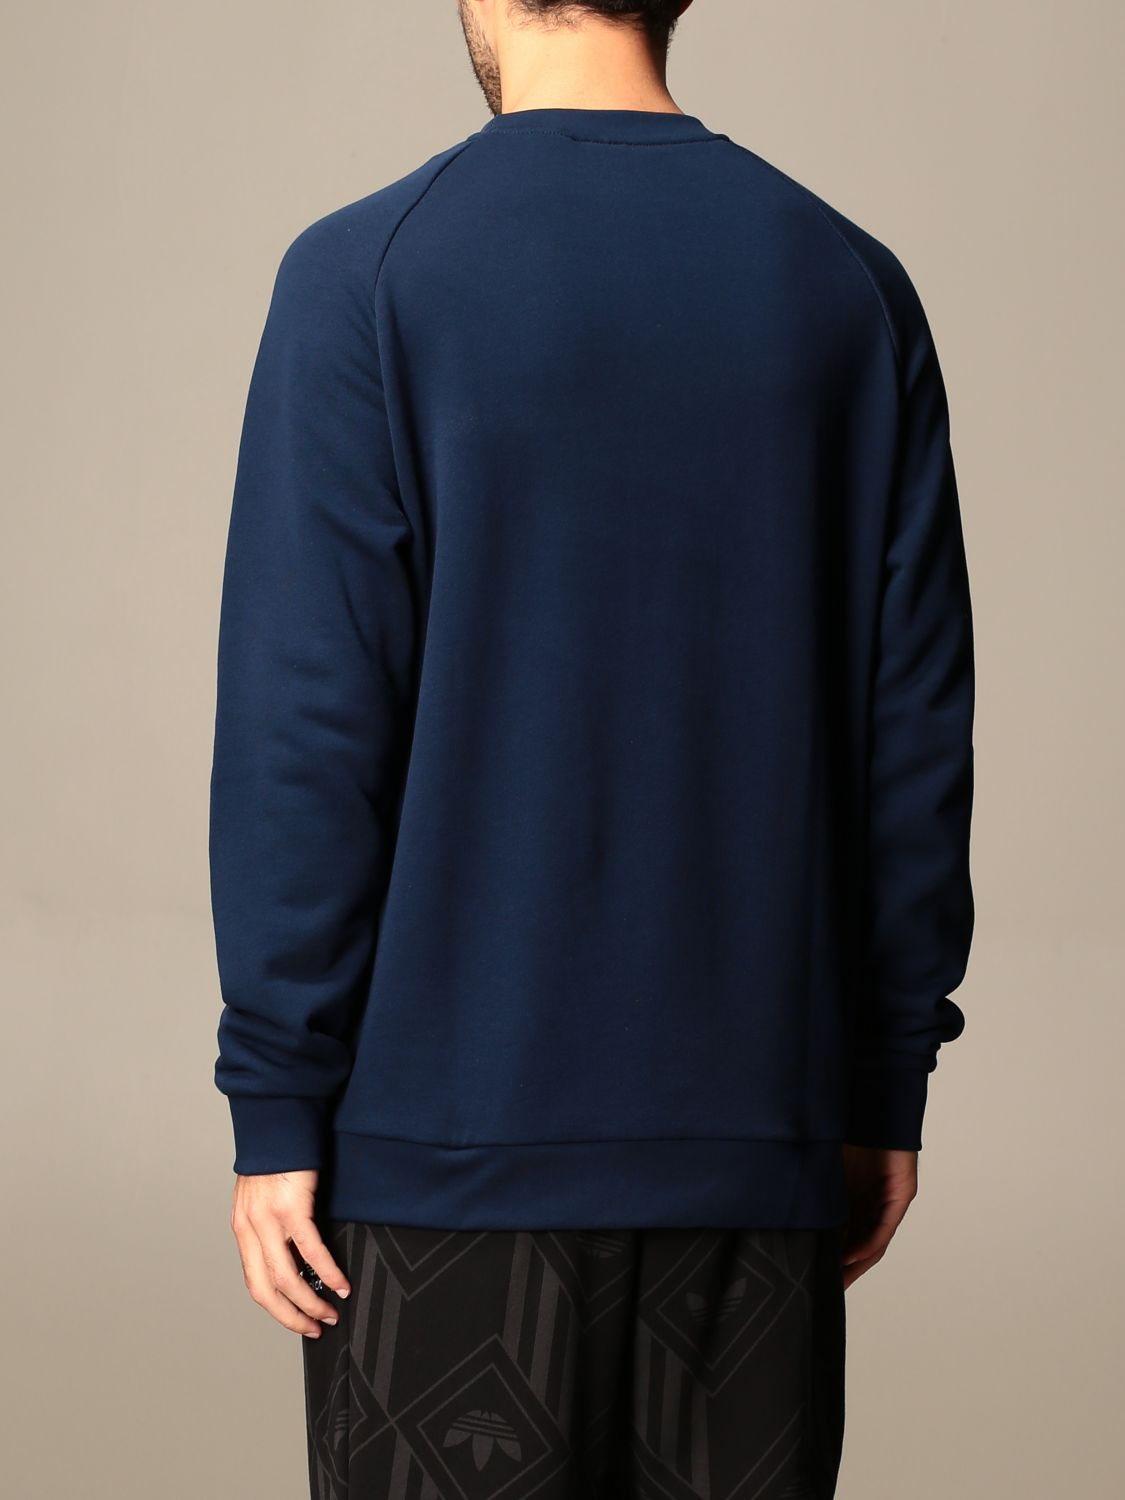 Sweatshirt Adidas Originals: Sweatshirt men Adidas Originals navy 3